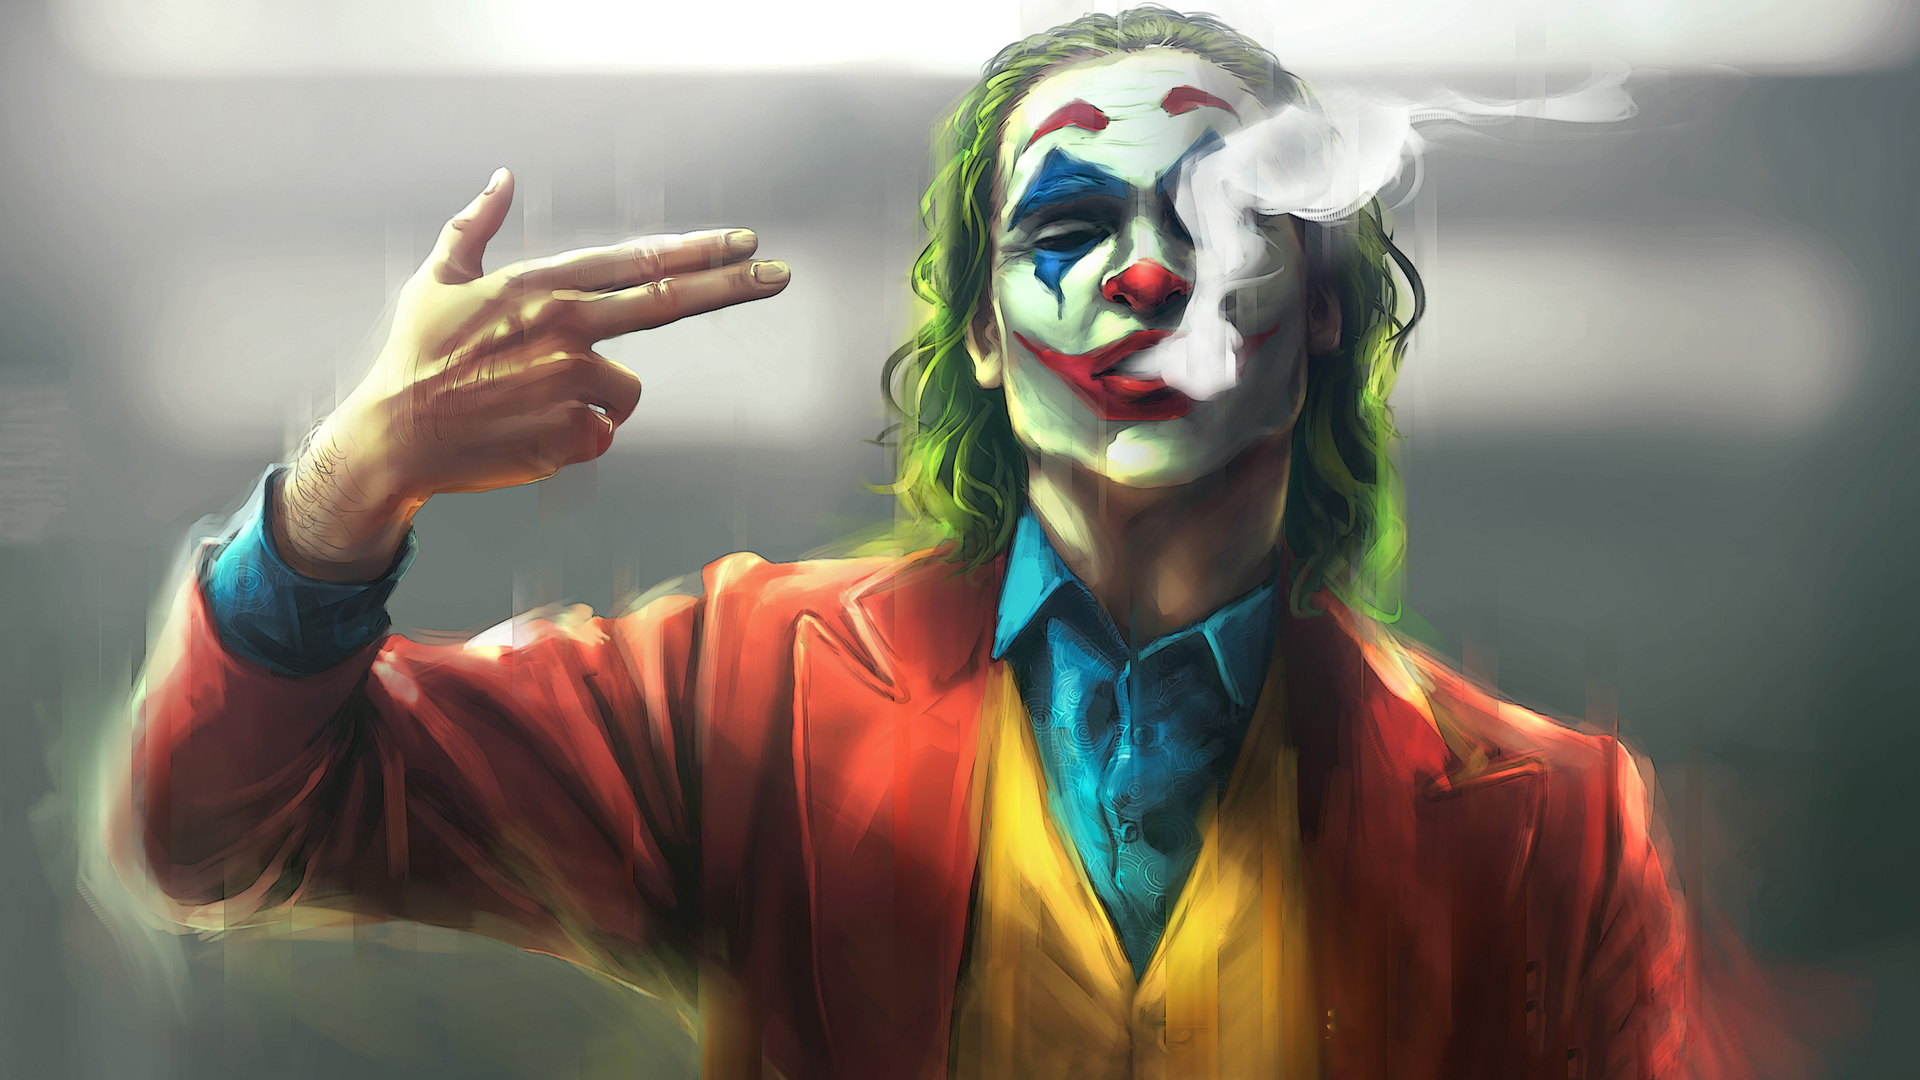 1920x1080 Joker Finger Gun Shot Laptop Full Hd 1080p Hd 4k Wallpapers Images Backgrounds Photos And Pictures